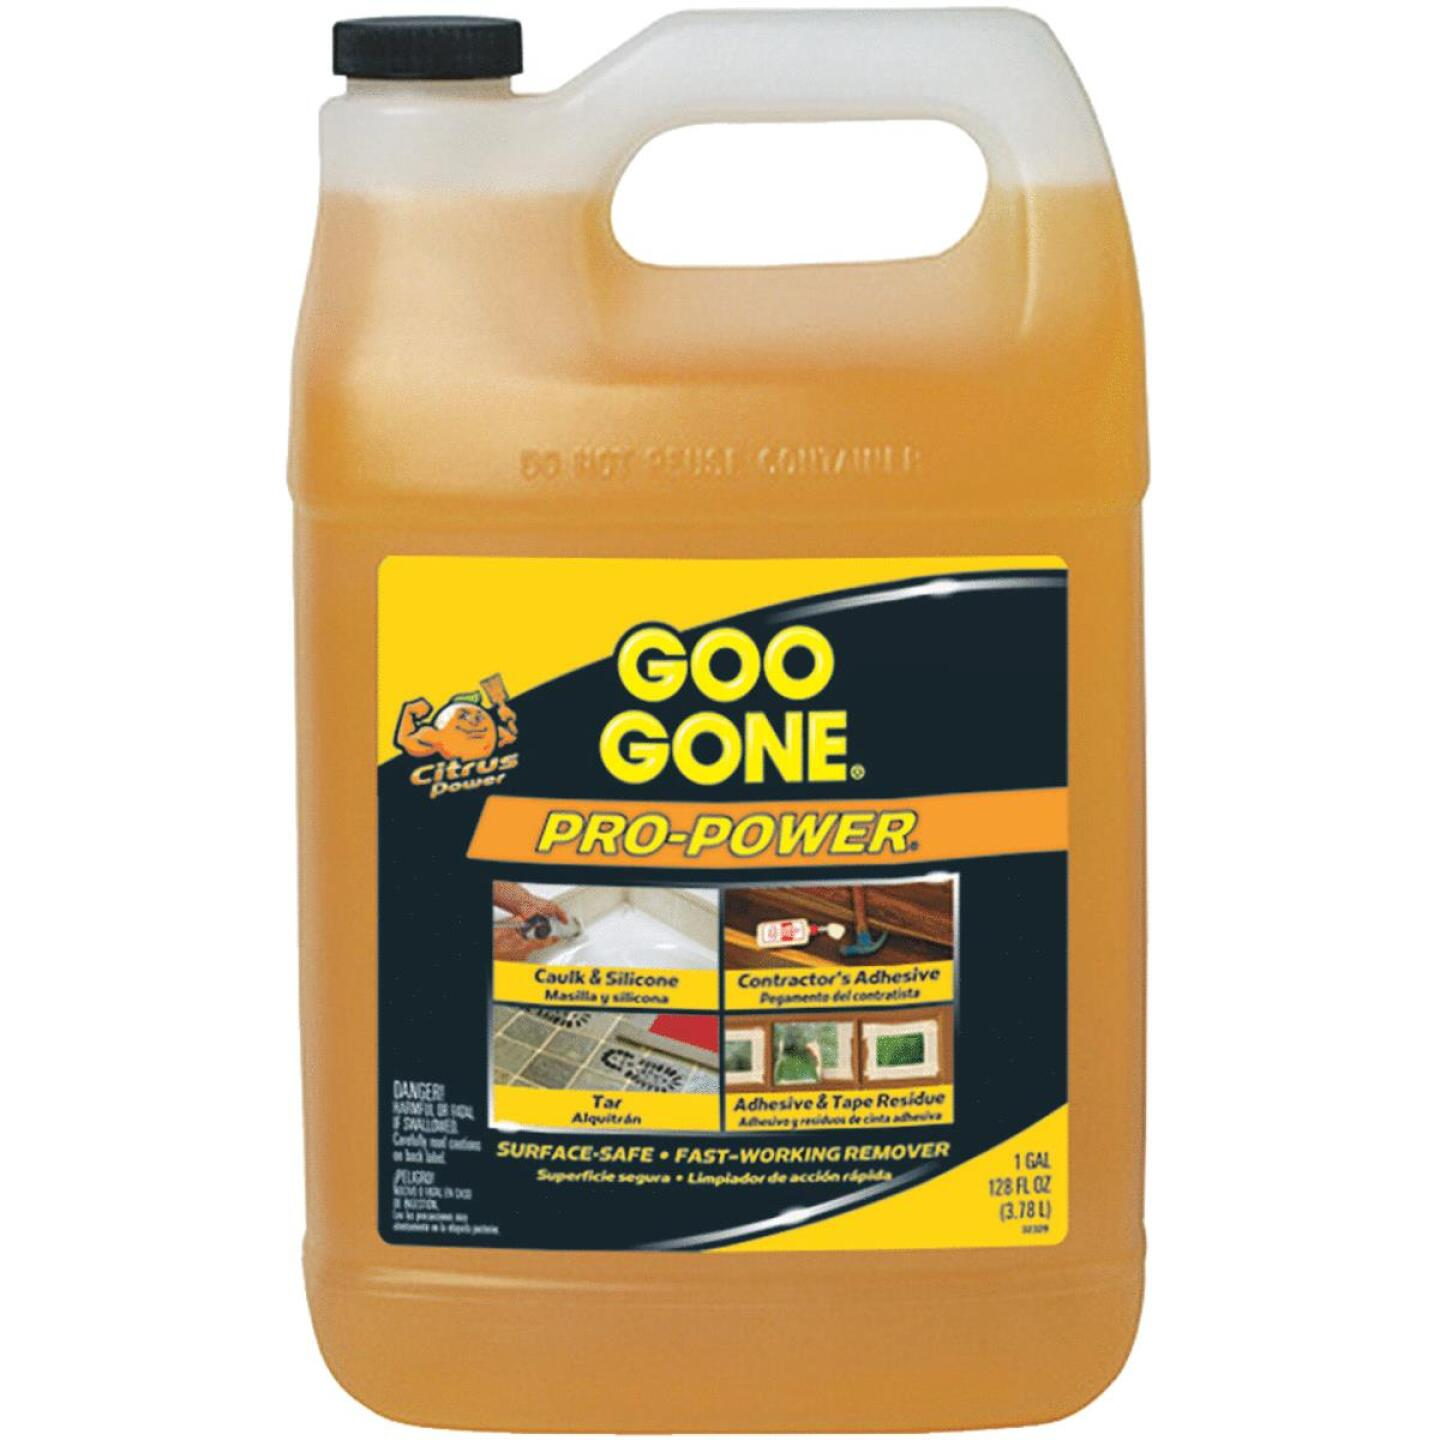 Goo Gone 1 Gal. Pro-Power Adhesive Remover Image 45